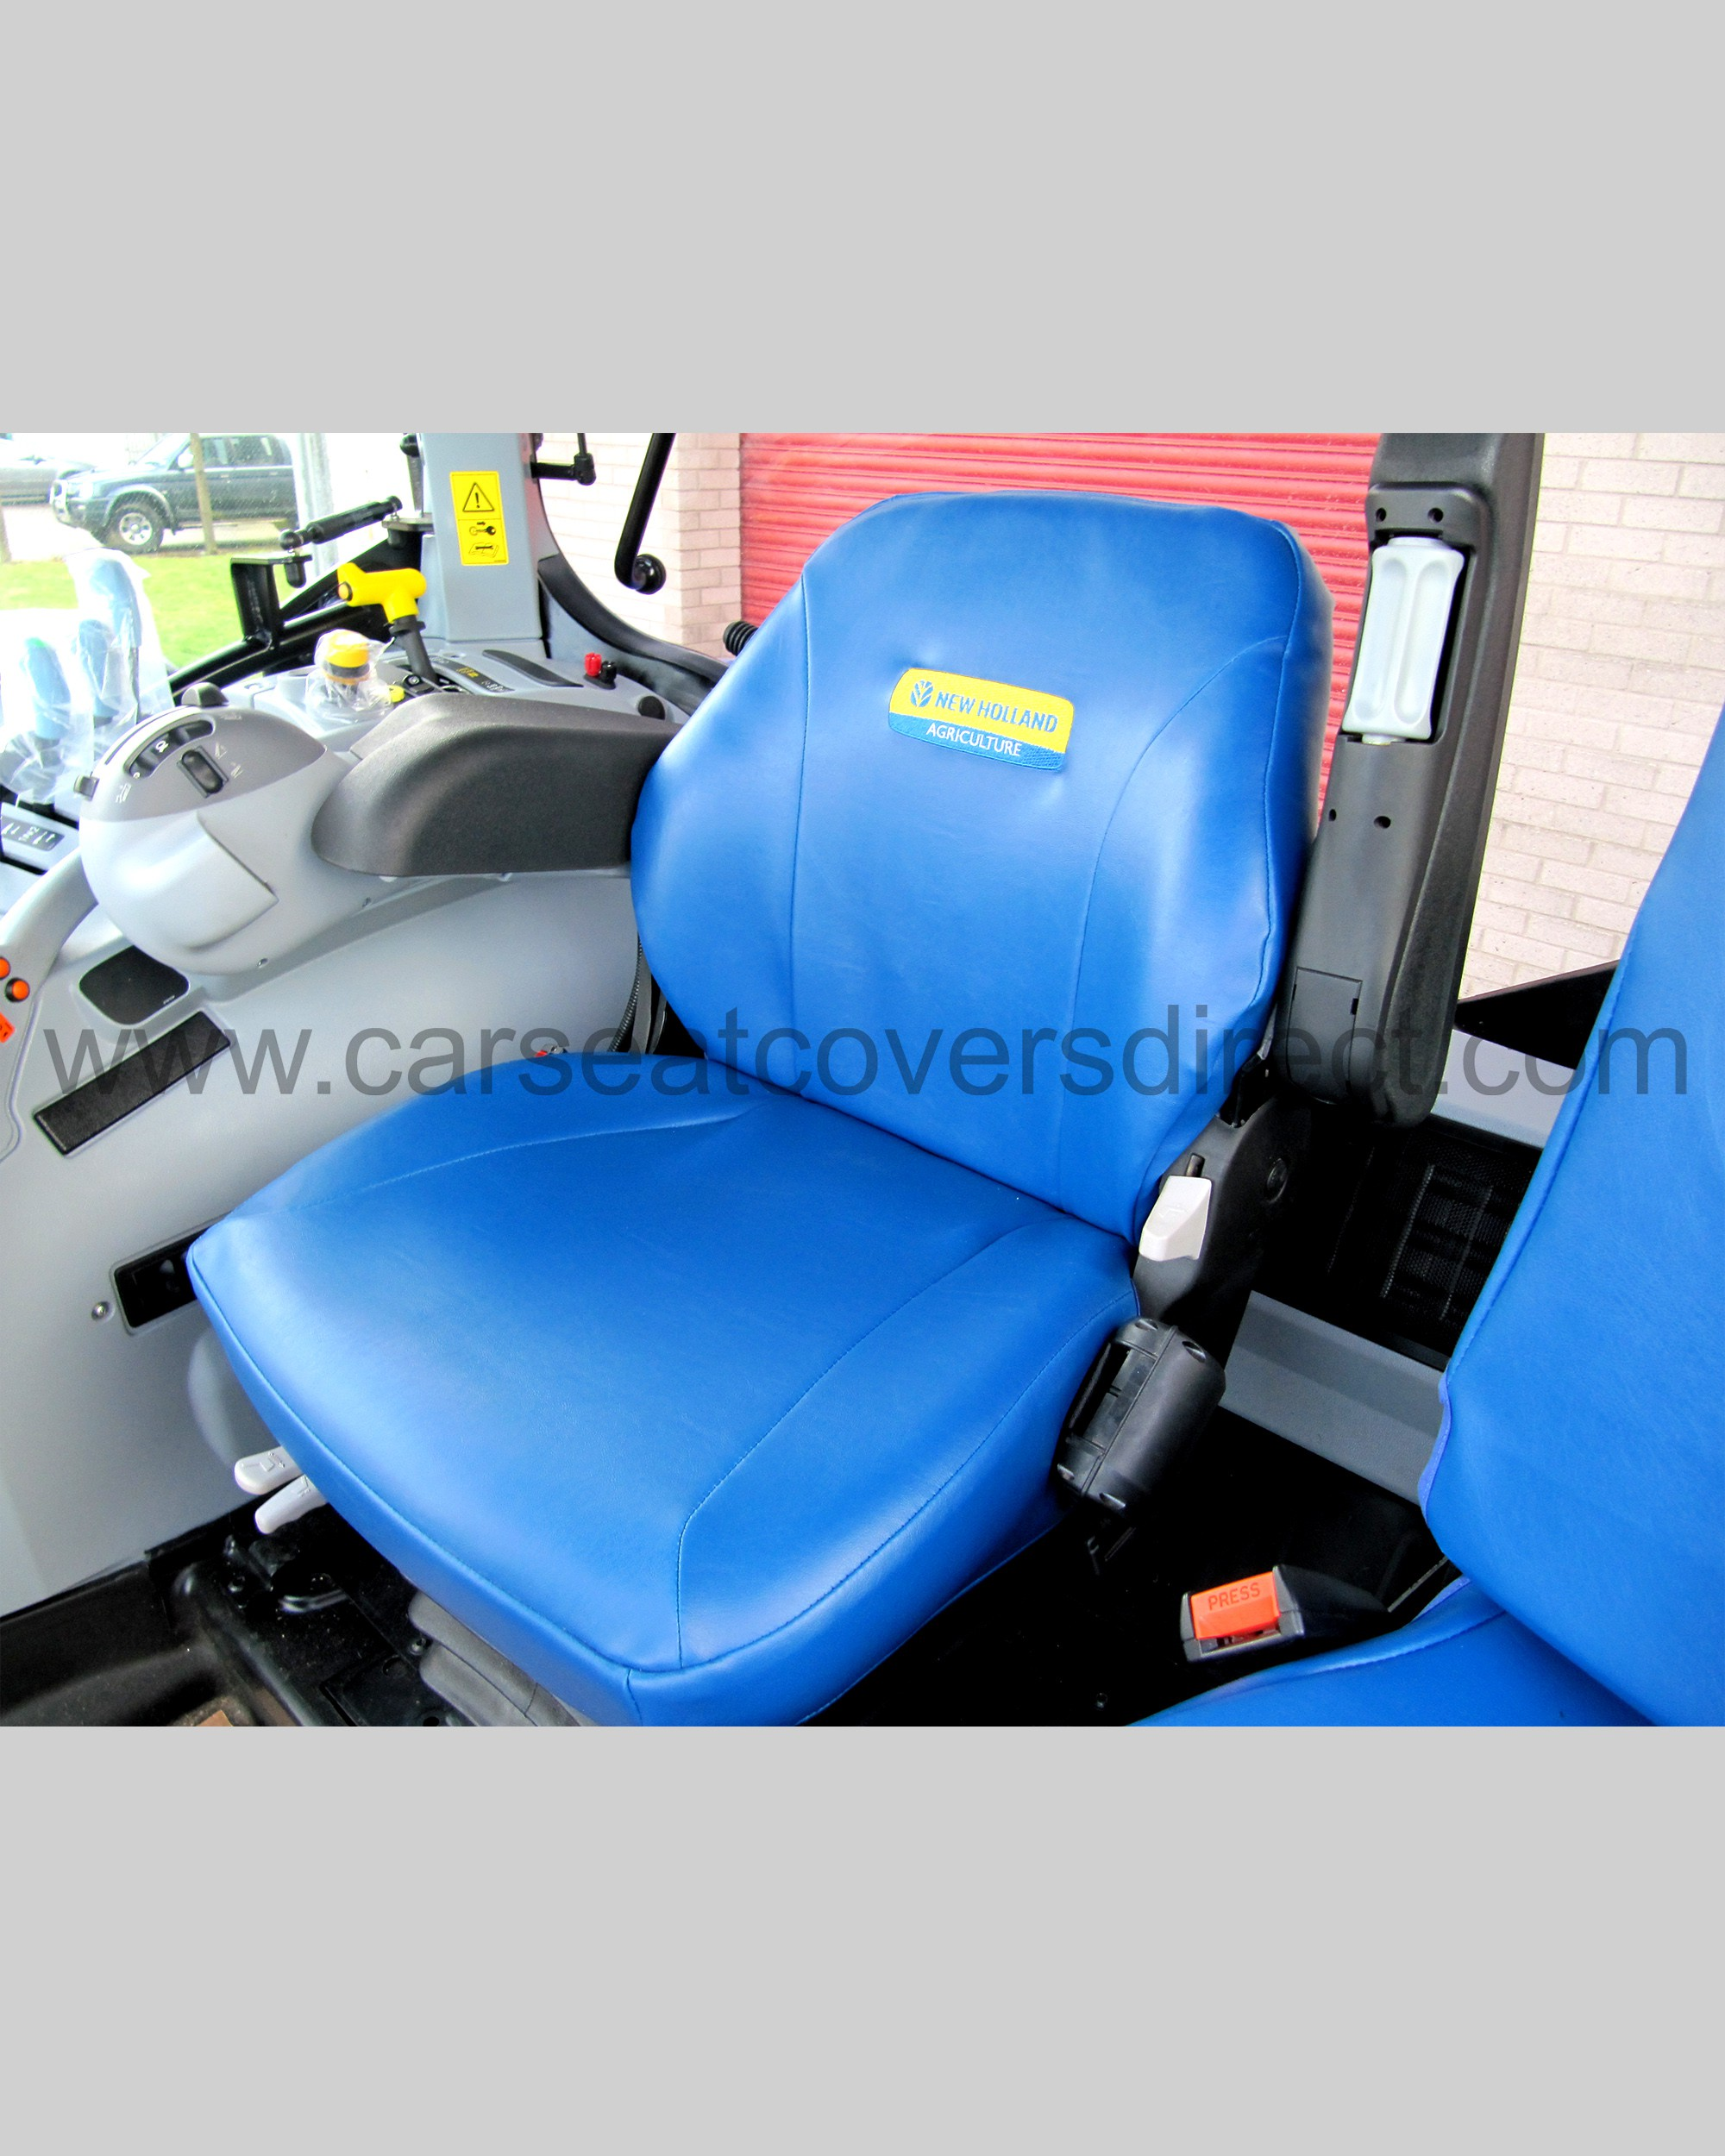 Metal Tractor Seat Replacement : Tractor seat in car pictures to pin on pinterest daddy